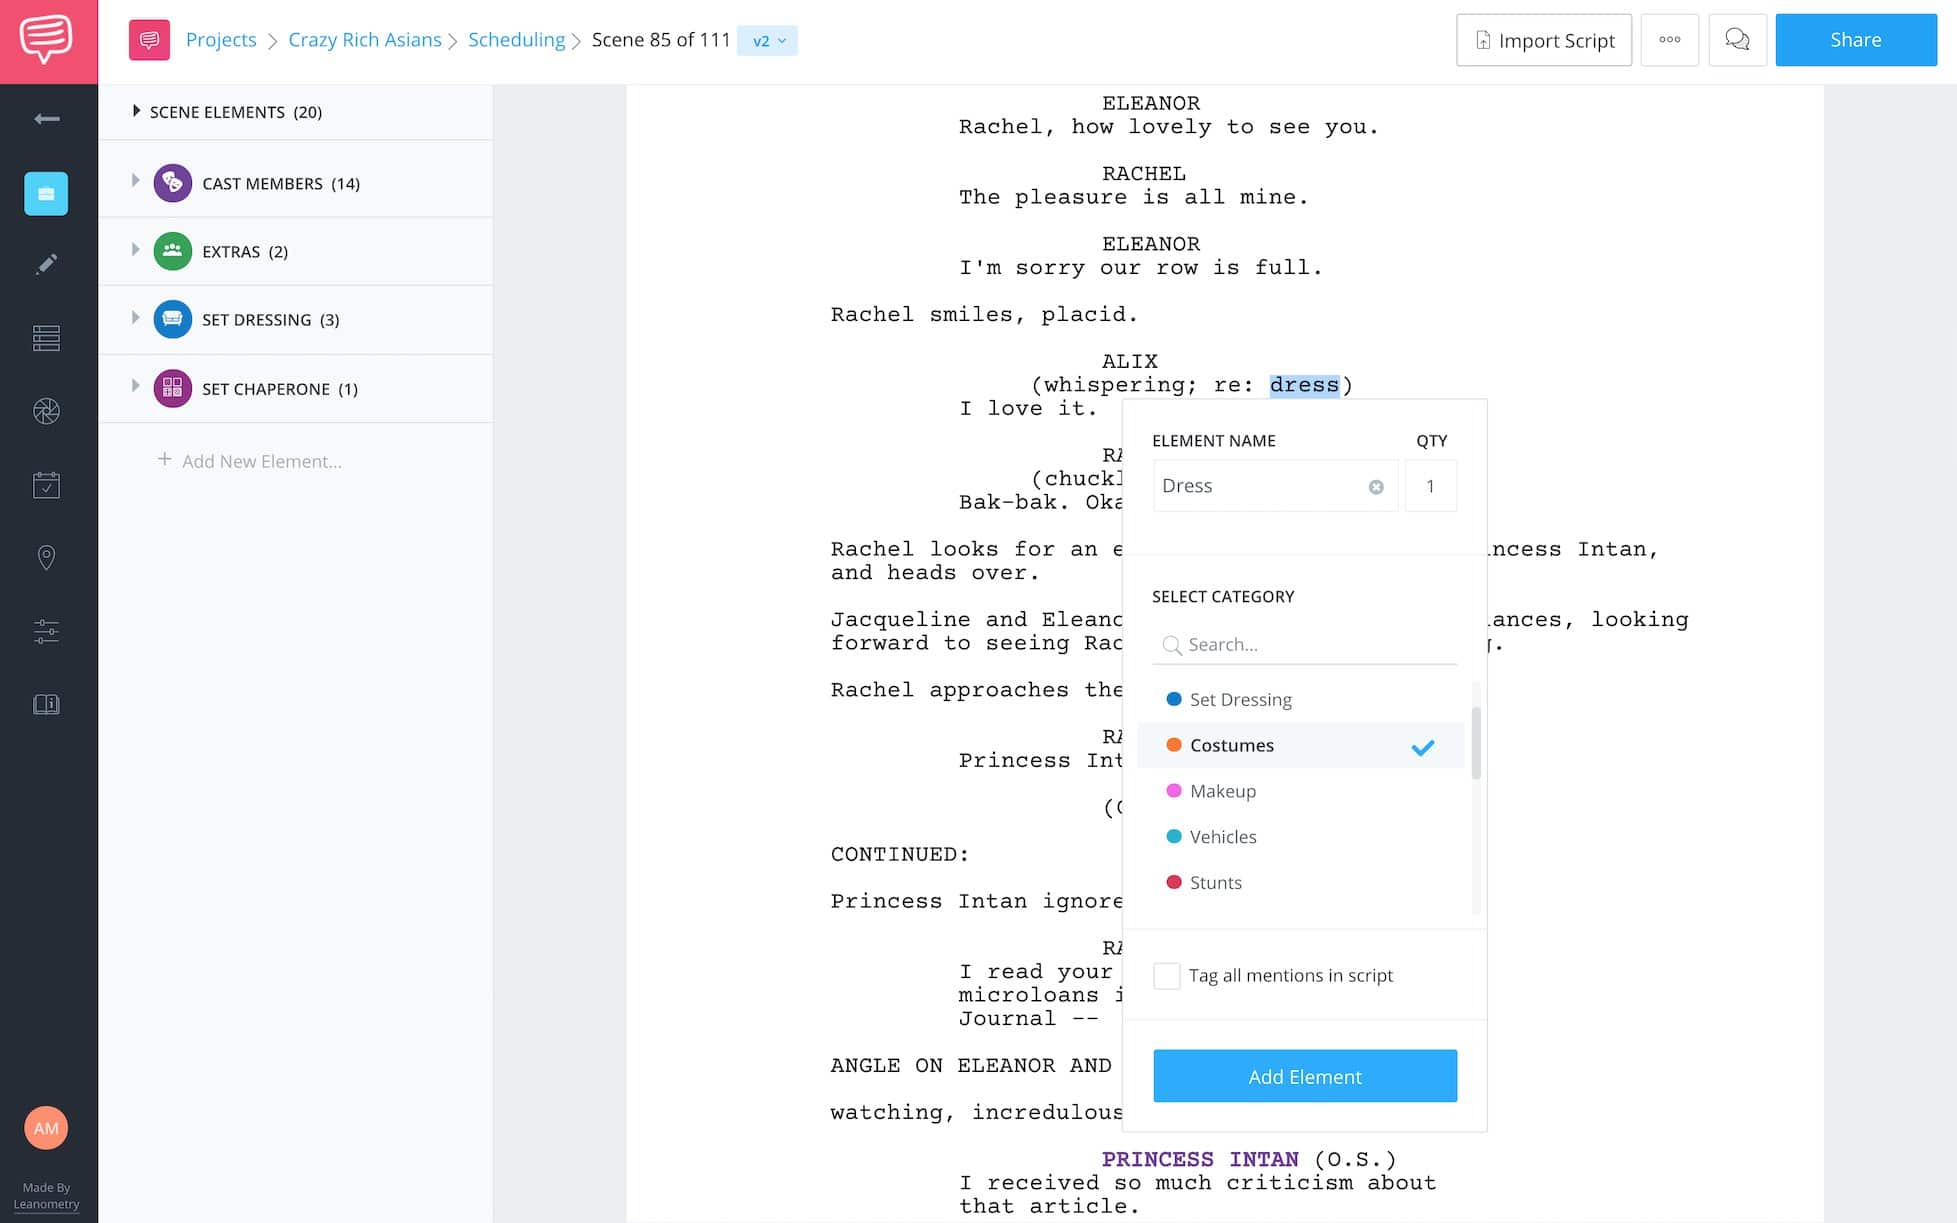 Breaking Down the Wedding Scene from Crazy Rich Asians - Tagging Wardrobe - StudioBinder Script Breakdown Software